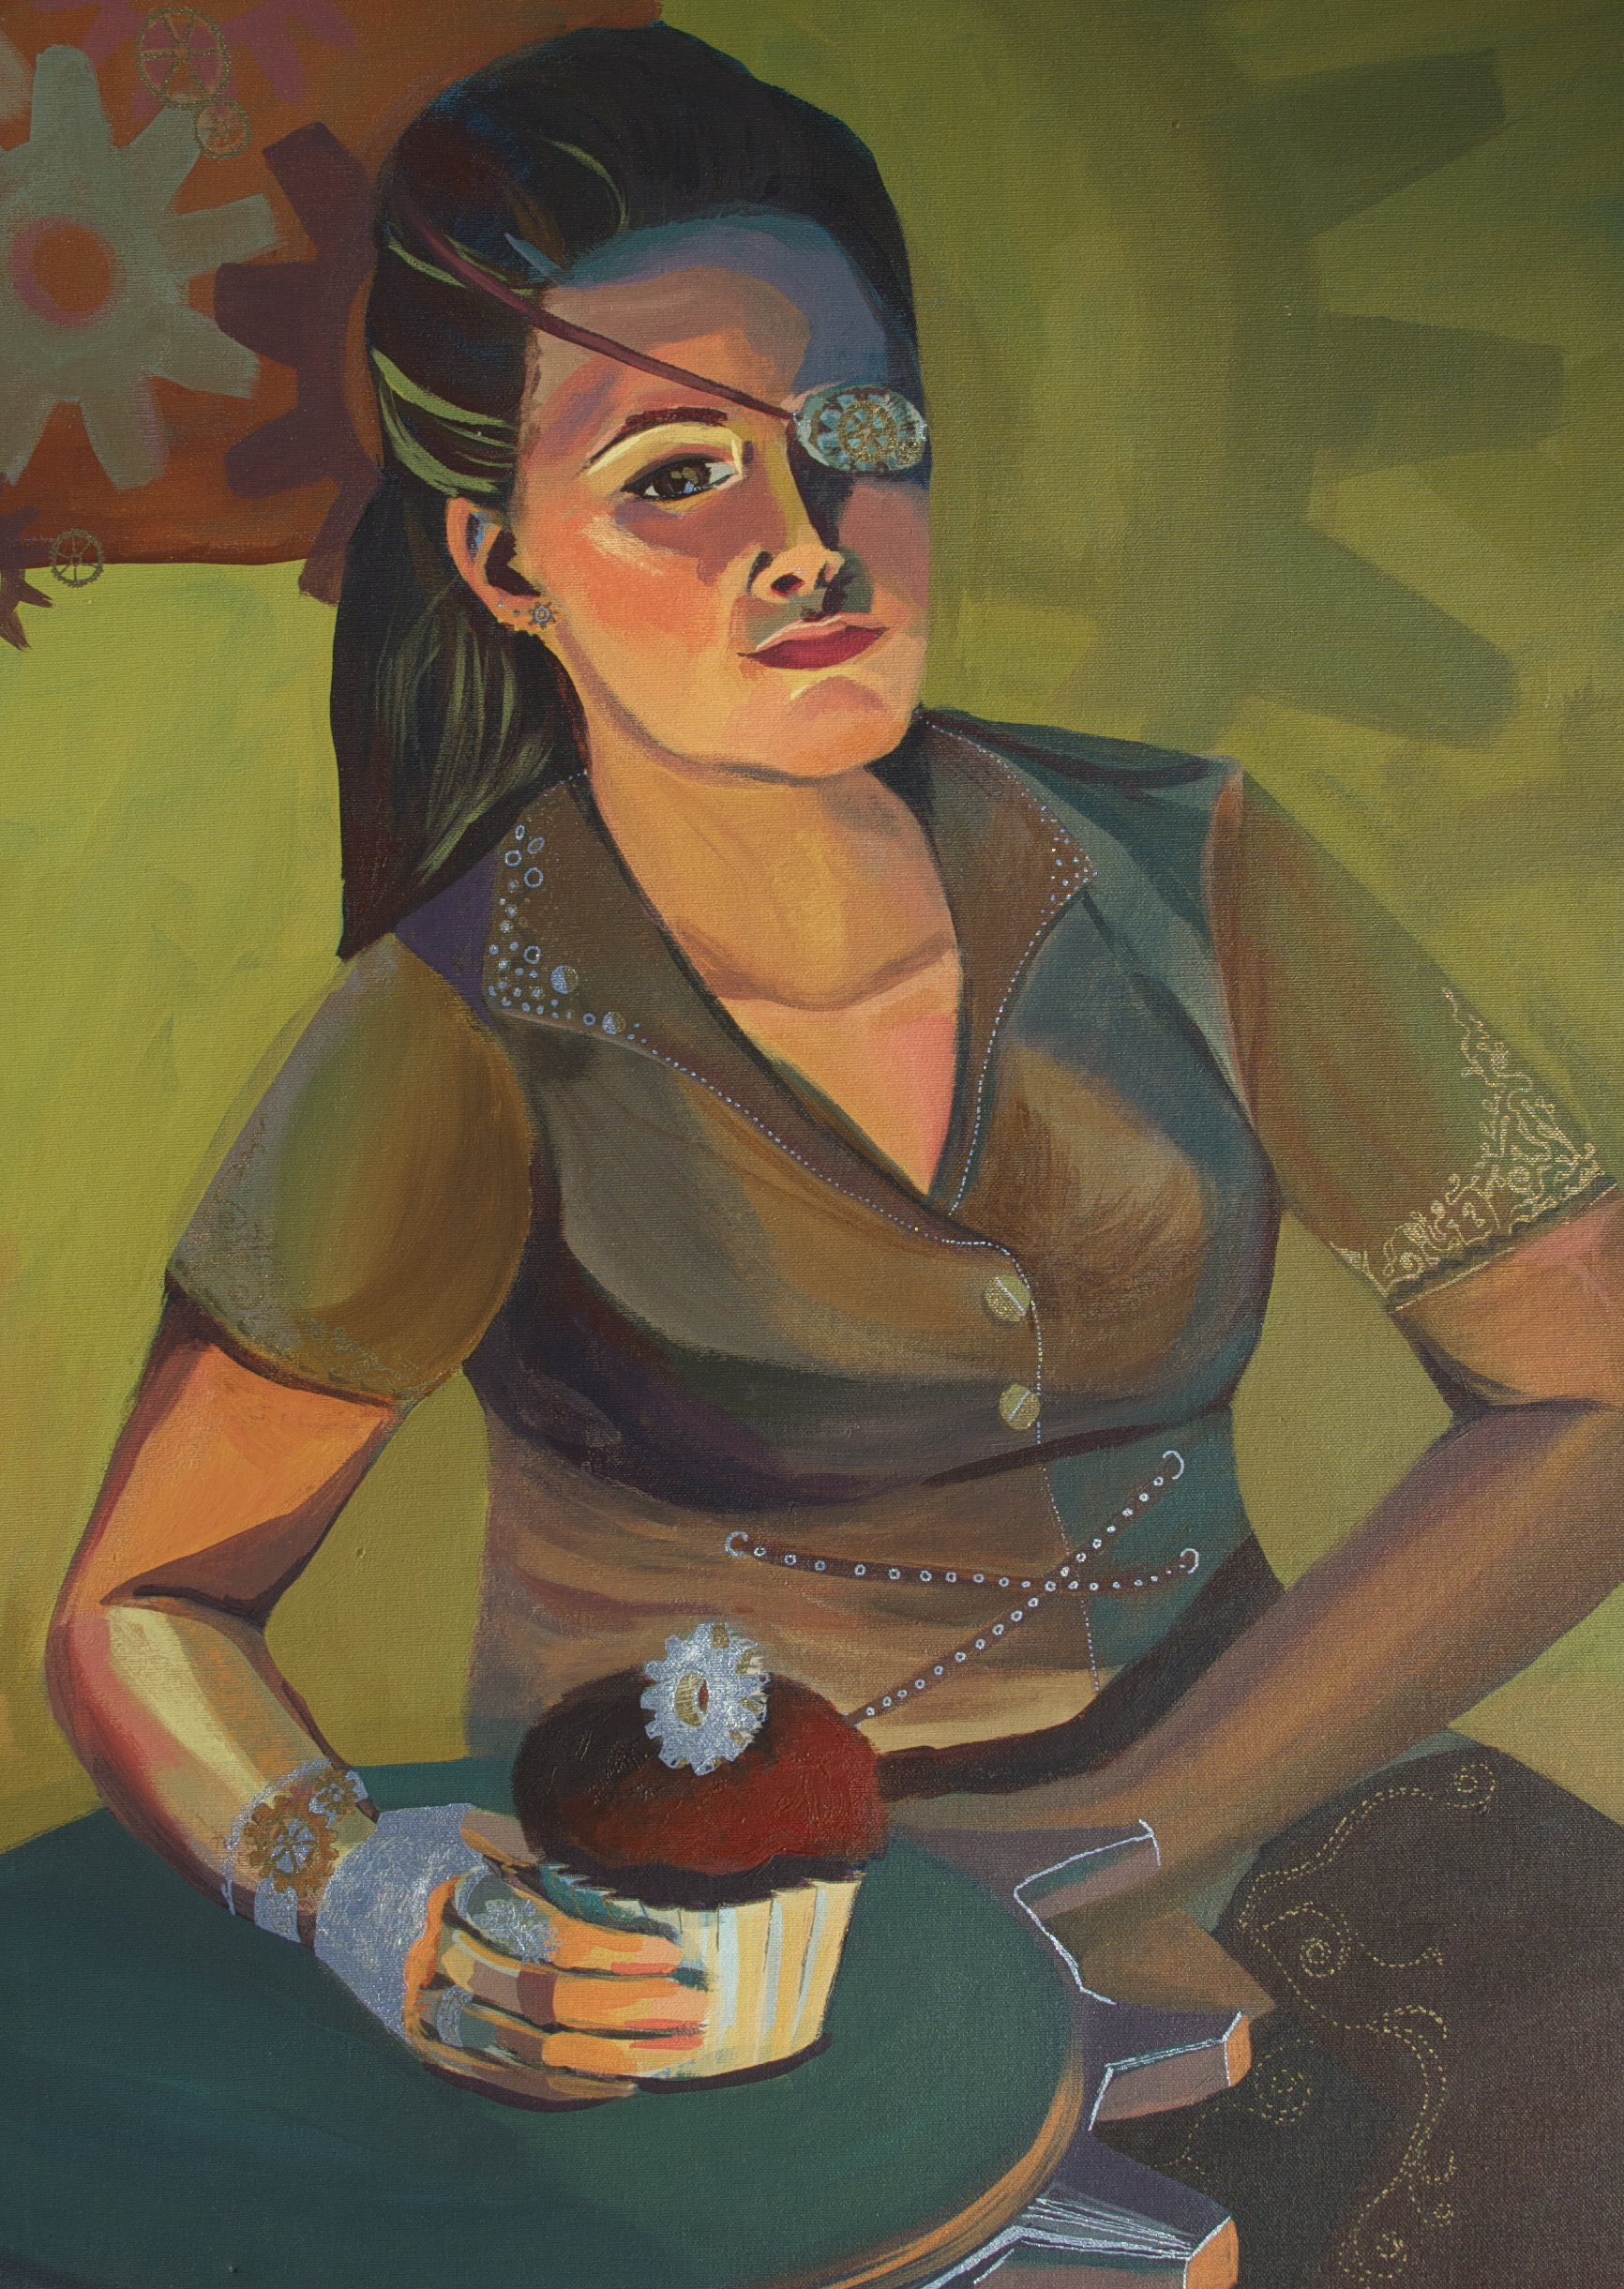 Steampunk self-portrait?Clearly this needs a cupcake! -